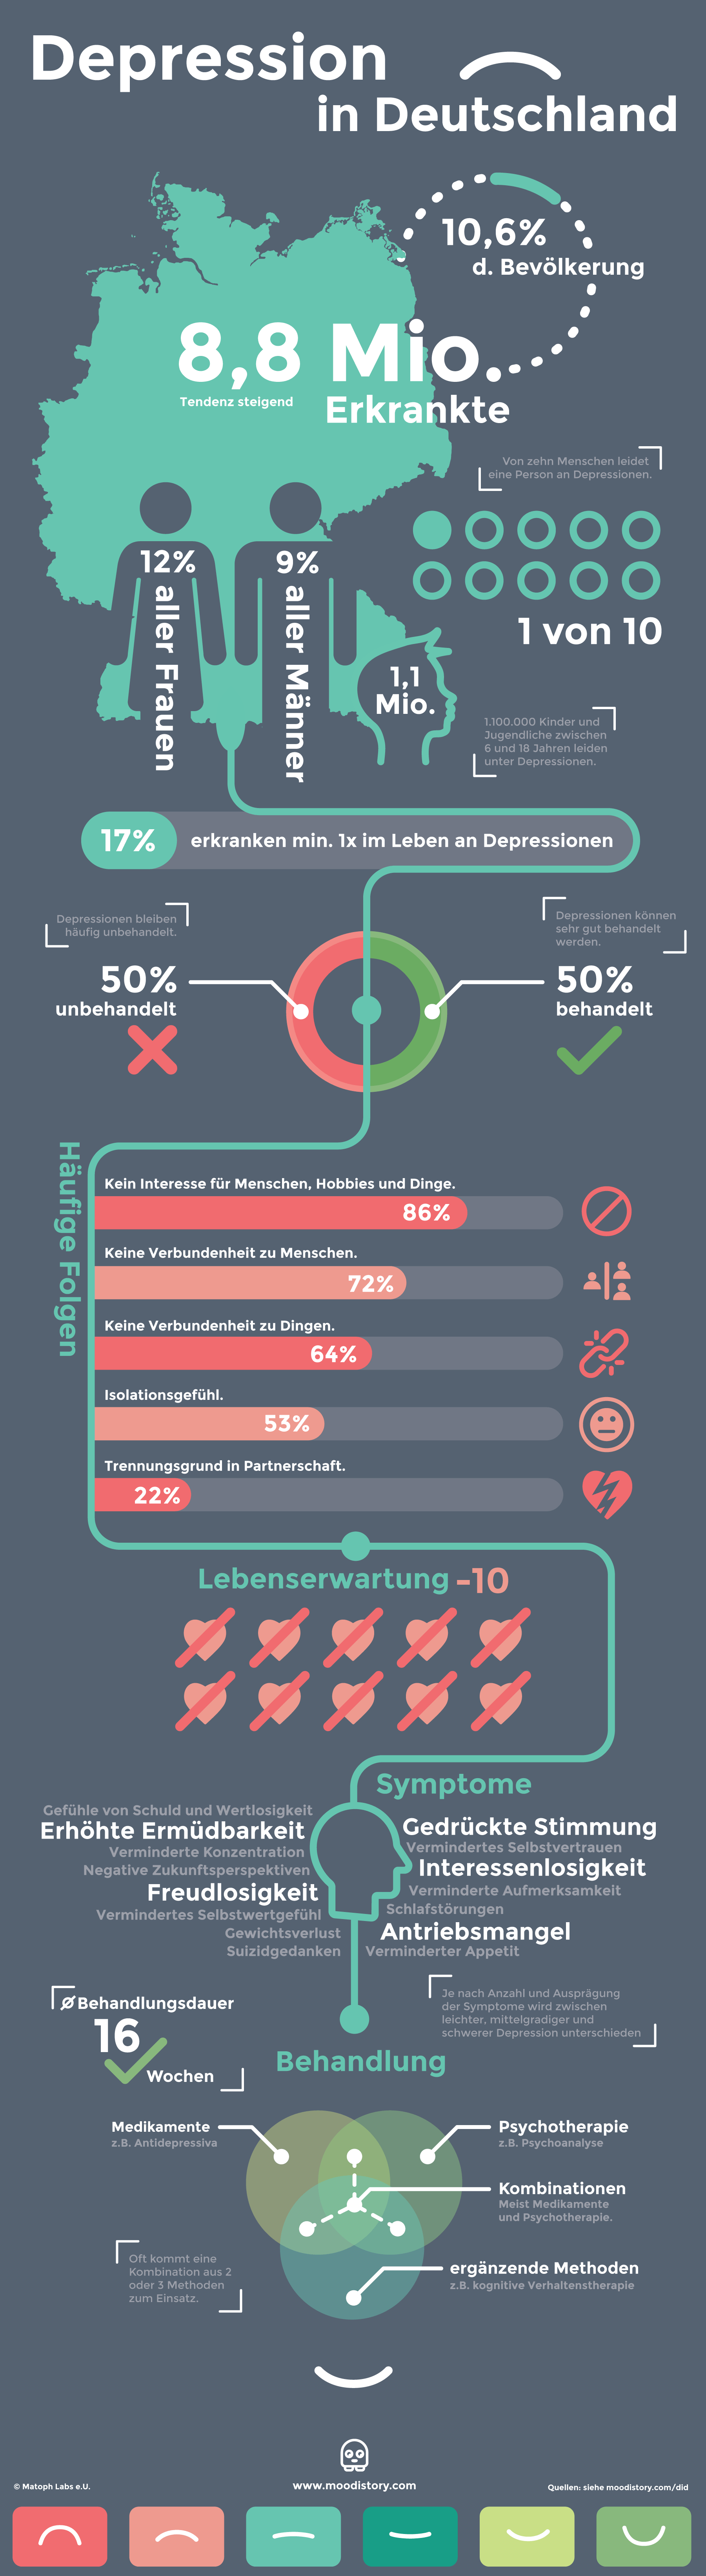 depression in deutschland